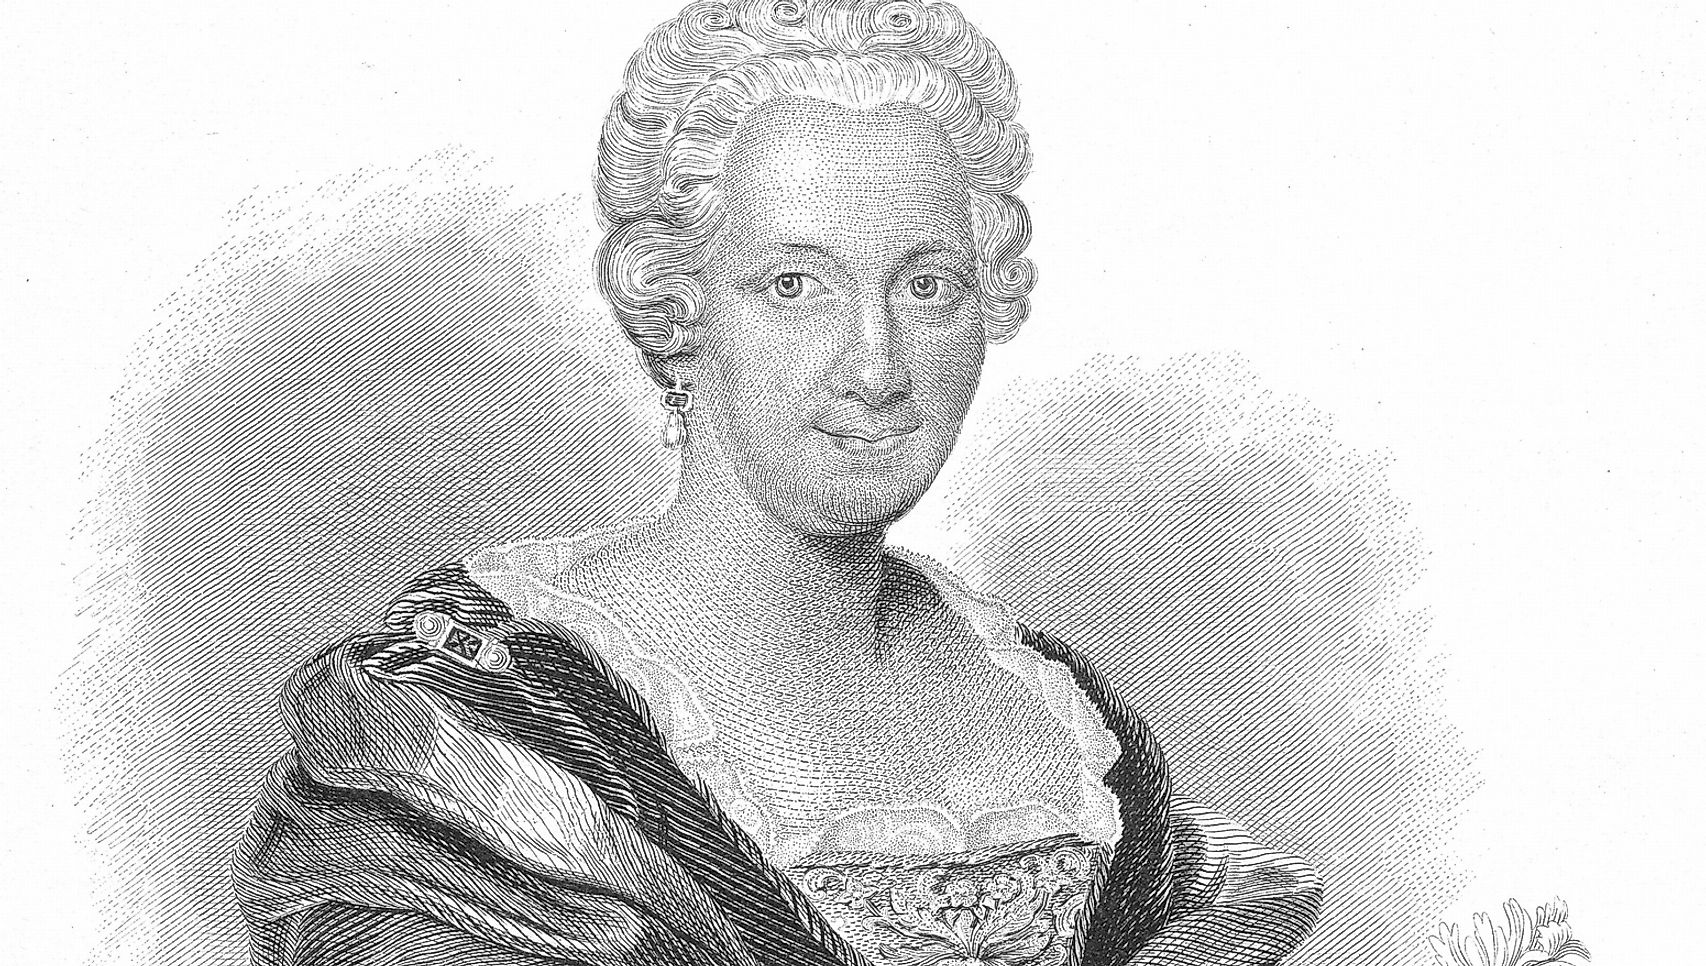 Maria Sibylla Merian's contributions to the Natural Sciences are still significant to this day. She helped moved entomology into the modern sphere.